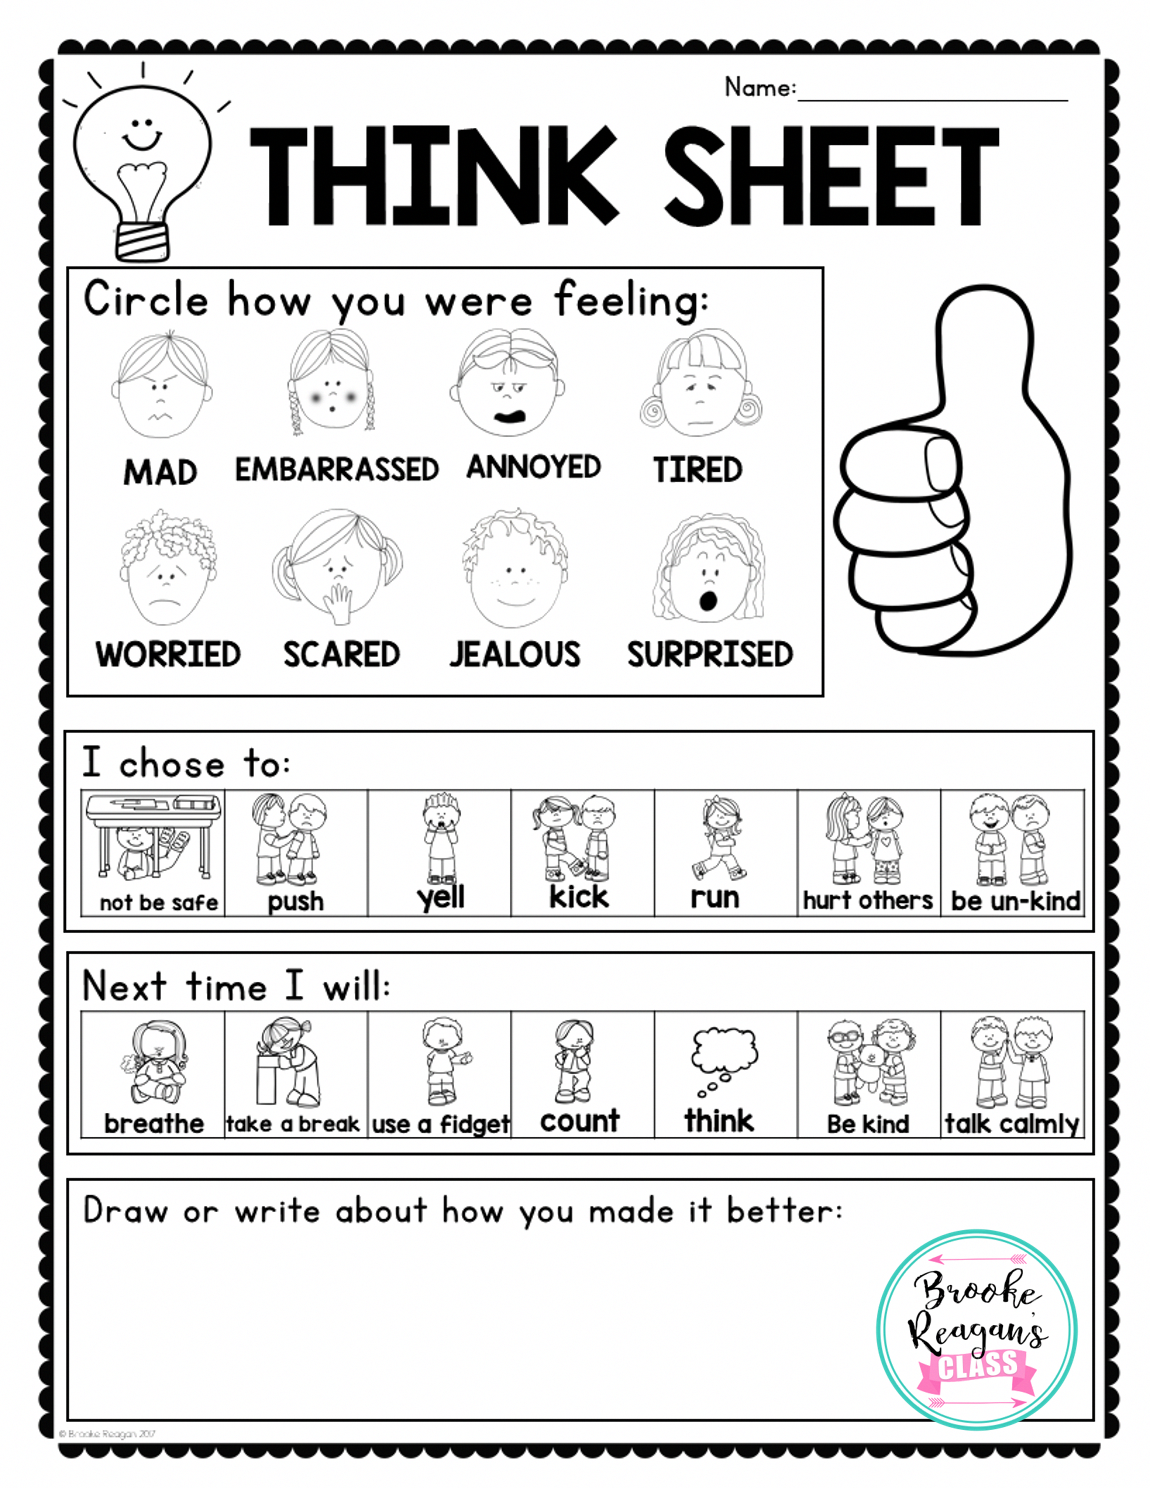 Think Sheet To Use After Students Have Gotten Calm In A